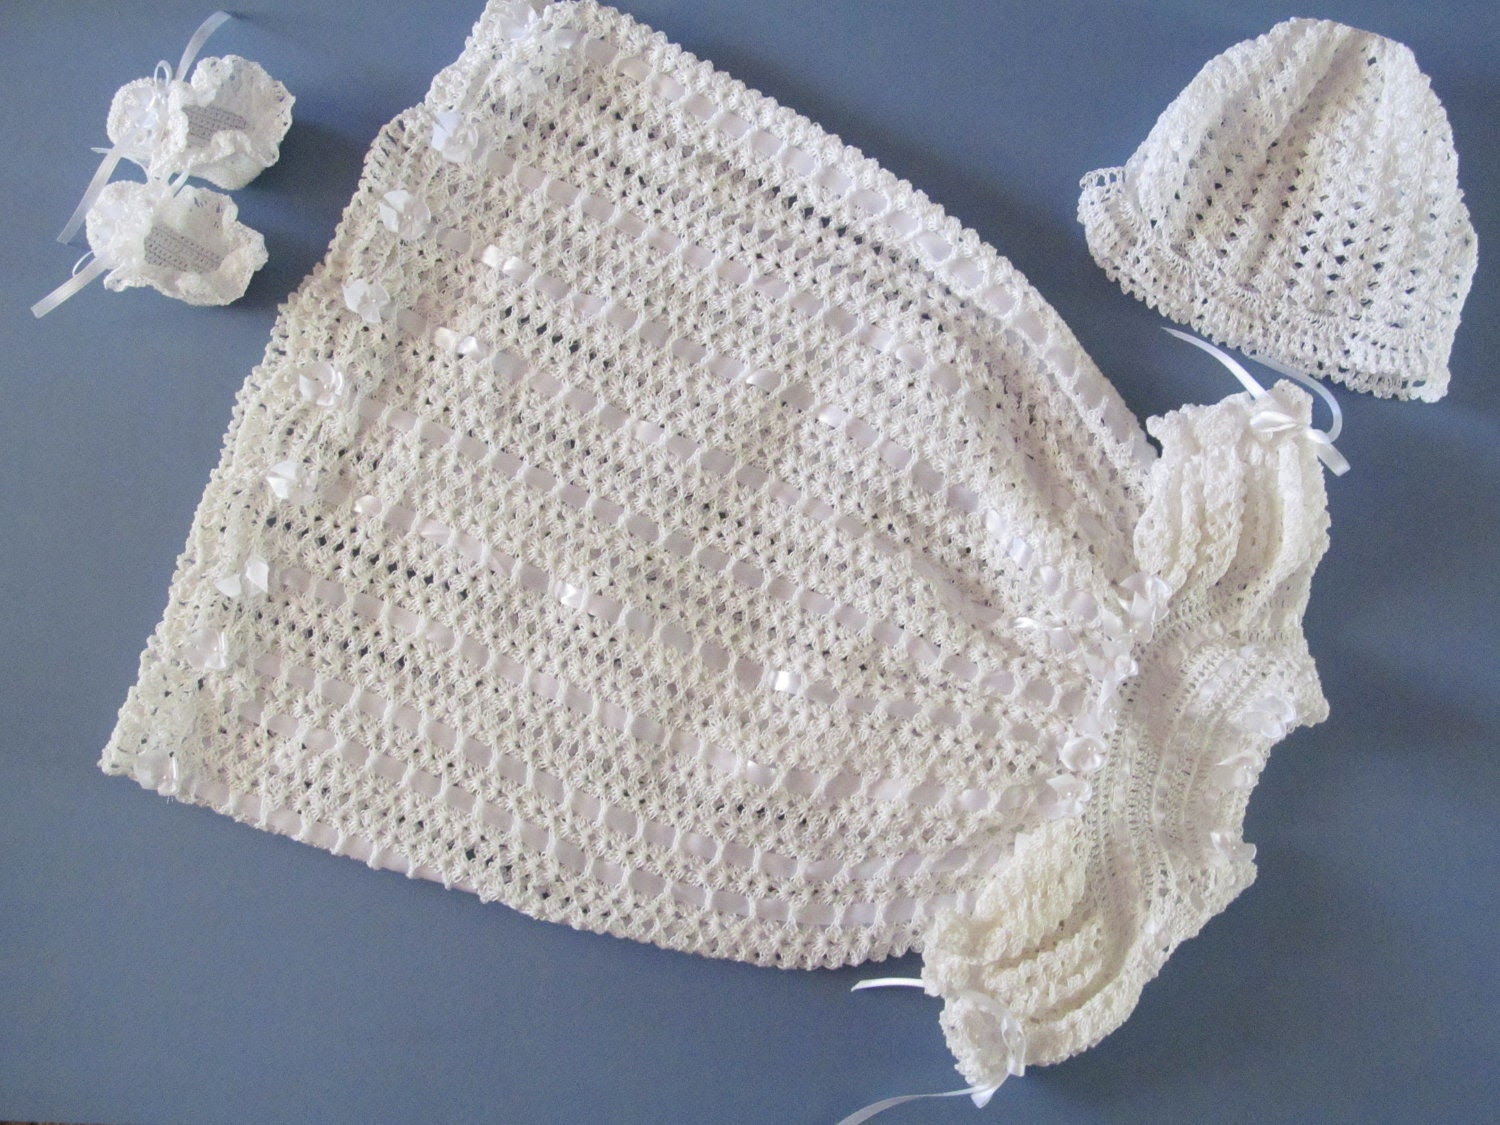 Crocheted Baby Christening Outfit